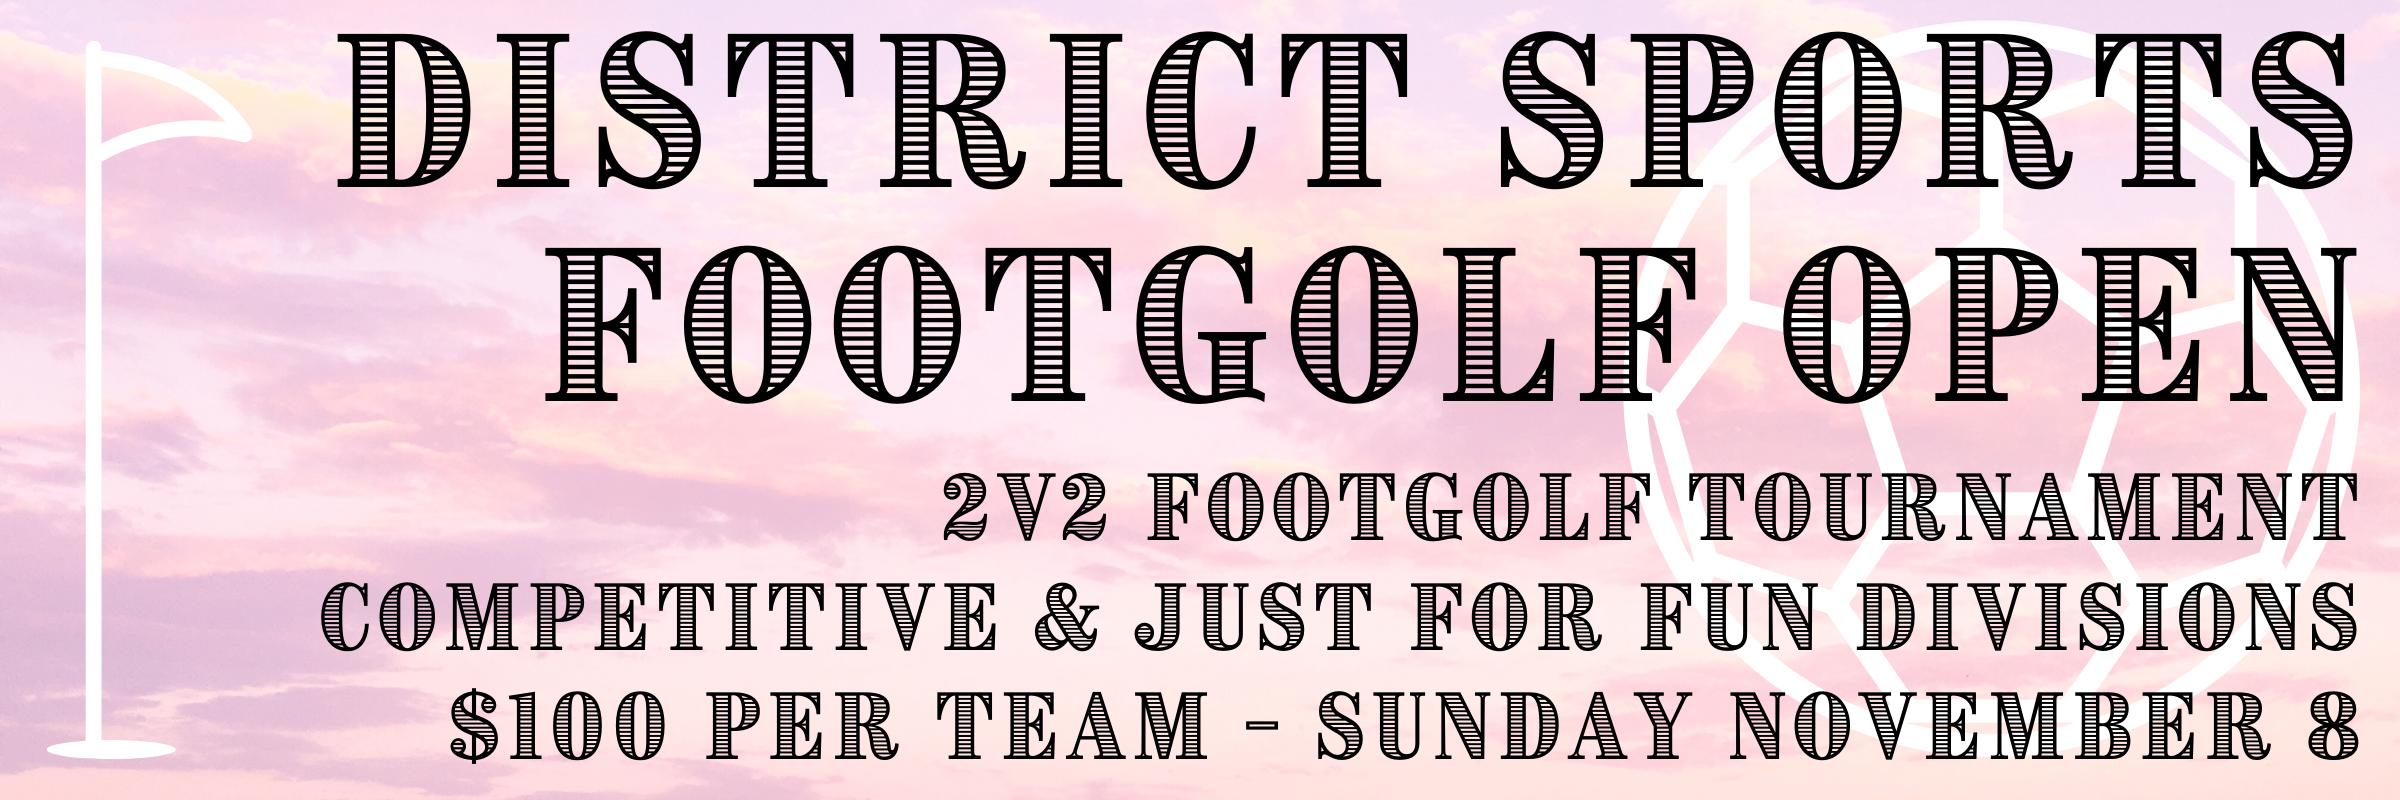 District Sports Open – A 2v2 Footgolf Tournament for All Skill Levels!